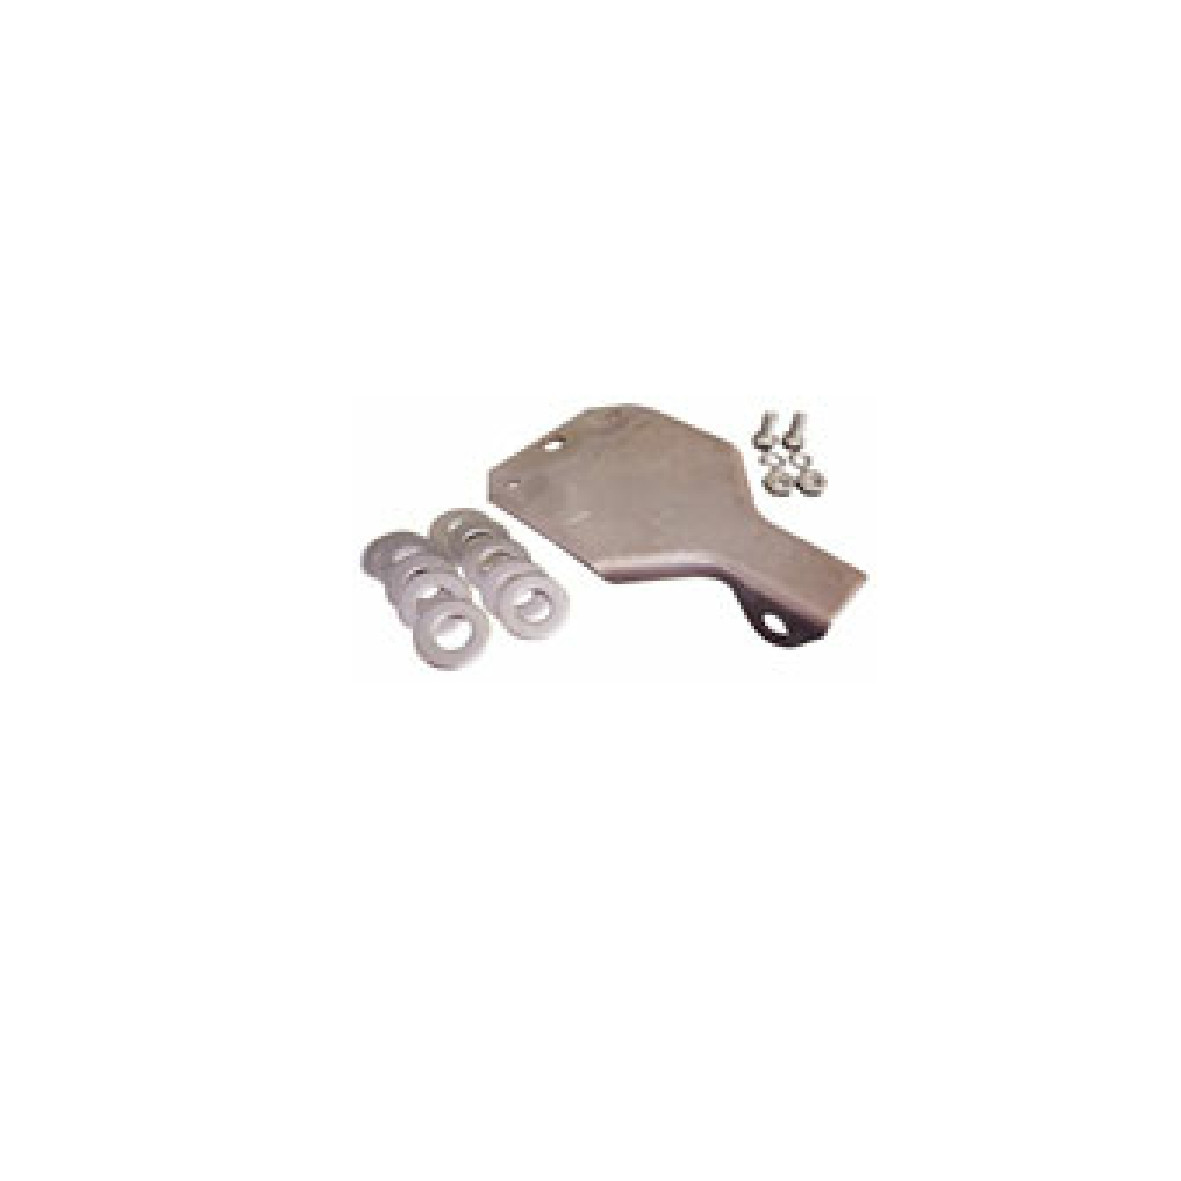 RX-20 Star Arm Replacement Kit   078-067